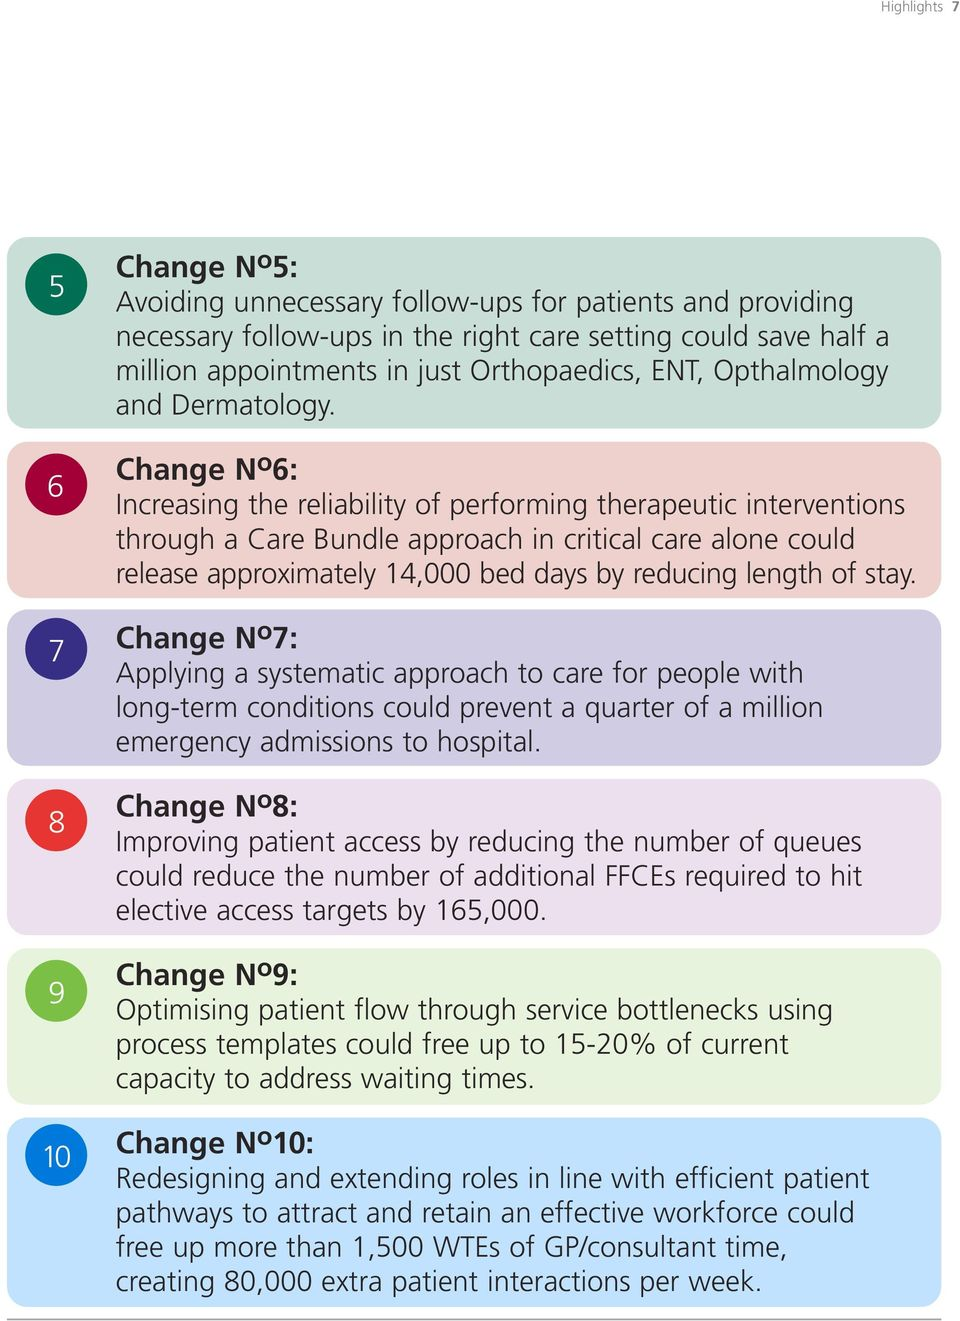 Change N o 6: Increasing the reliability of performing therapeutic interventions through a Care Bundle approach in critical care alone could release approximately 14,000 bed days by reducing length